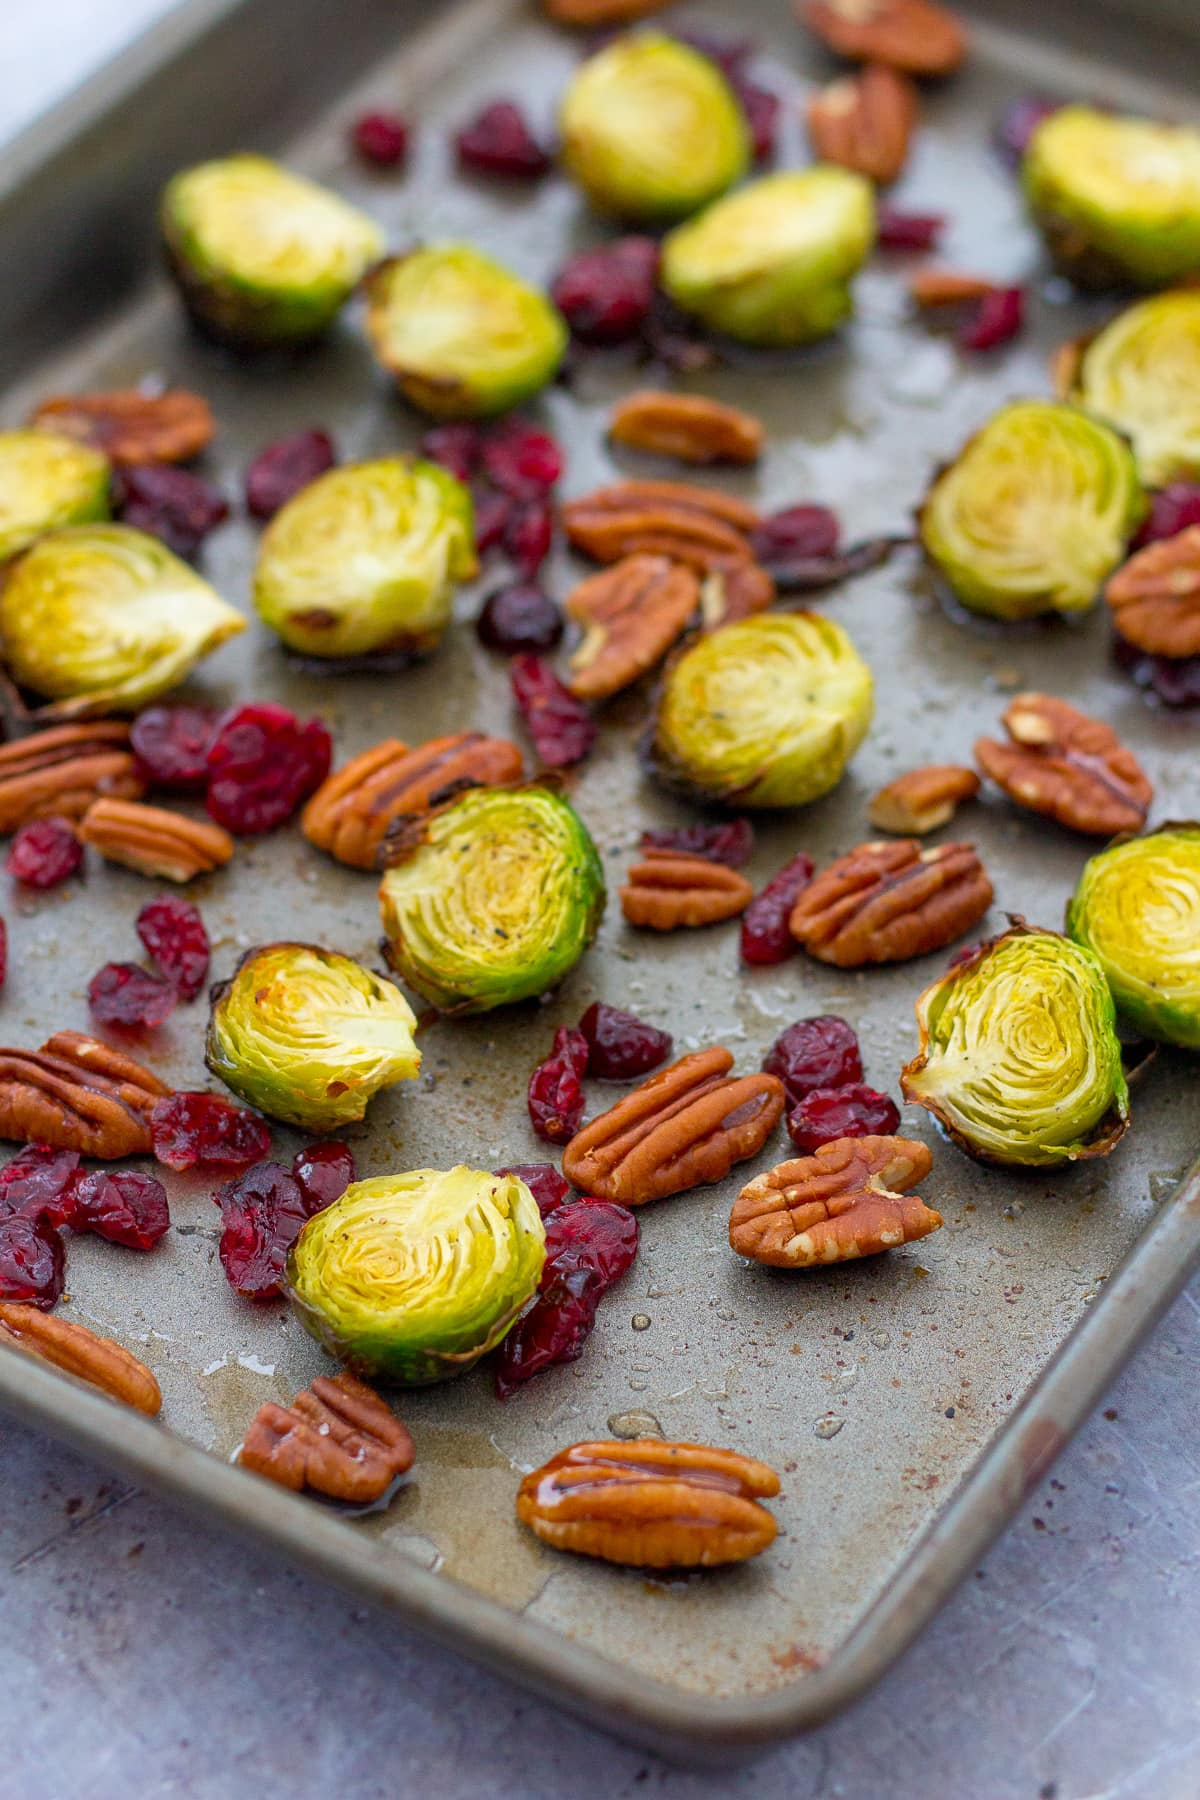 Maple Roasted Sprouts with Cranberries